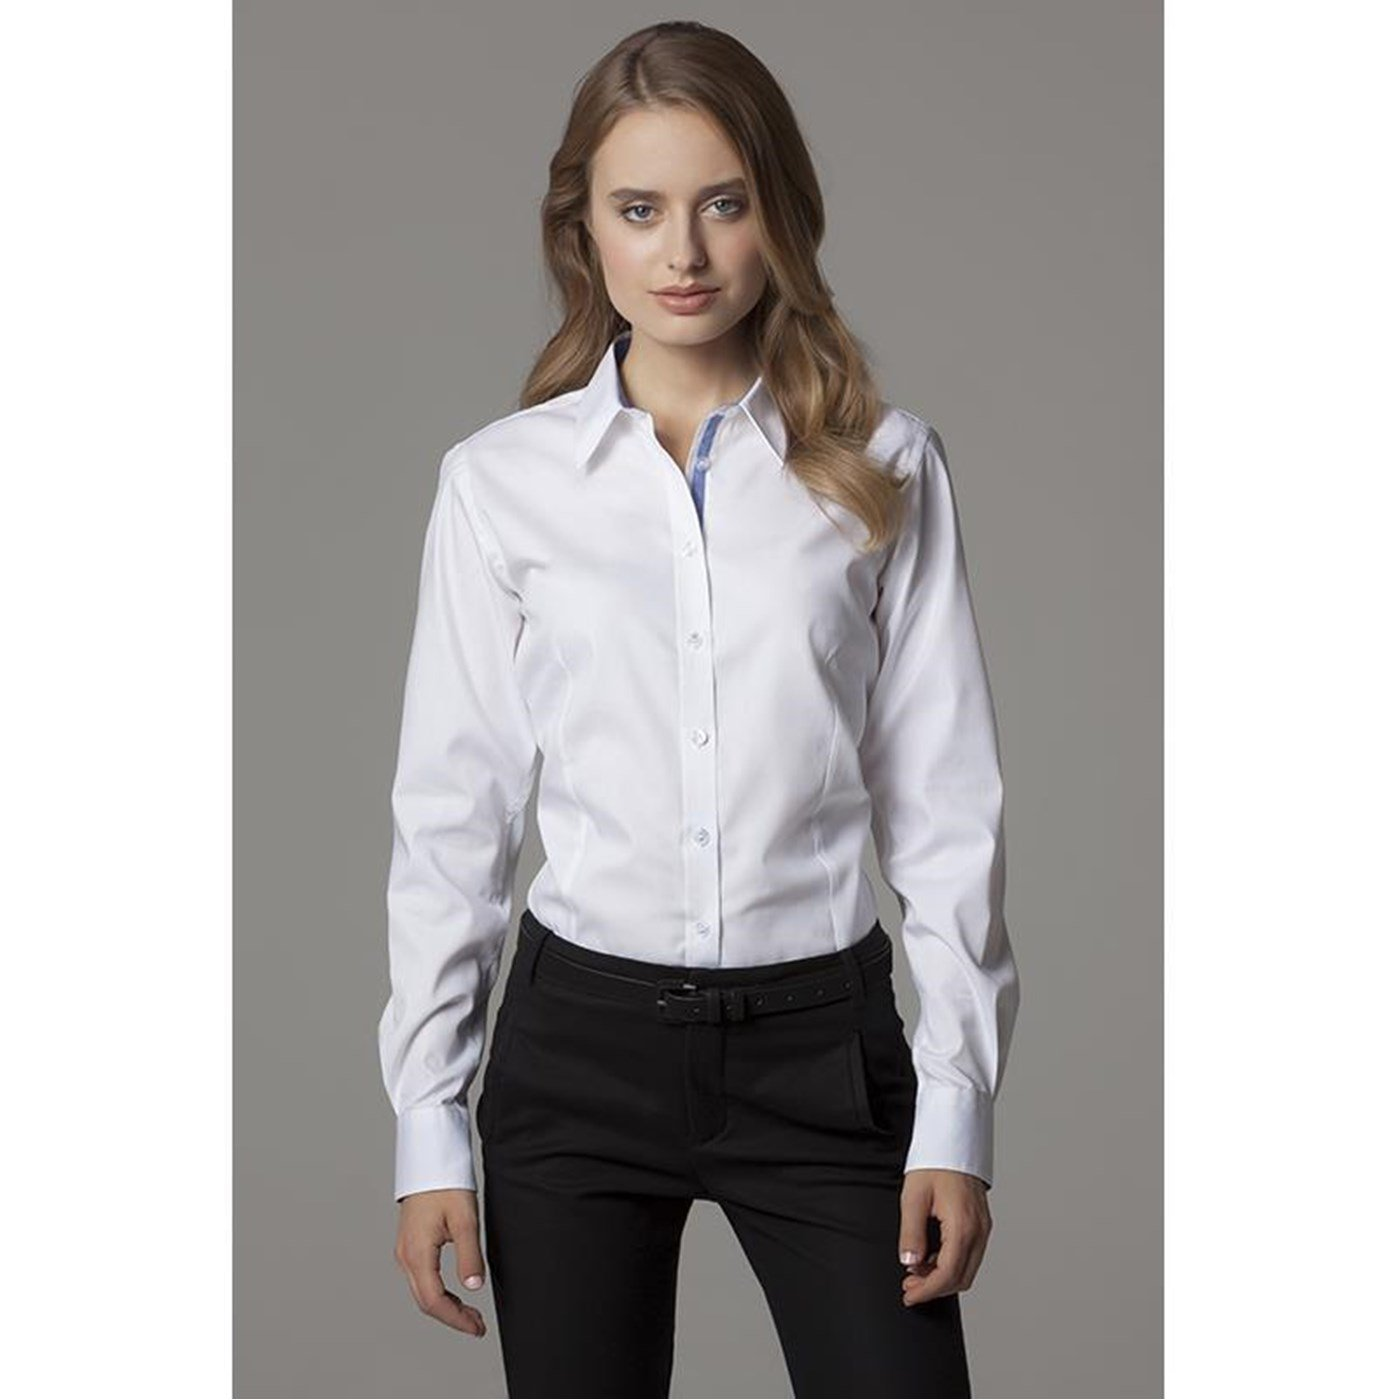 Van Heusen Oxford Shirt Blouse Long Sleeve Wrinkle Resistant Womens Size 2XL XXL See more like this Women's Shirts Dickies Oxford Short Sleeve Stretch Poplin Work Shirt FS Color Brand New · .